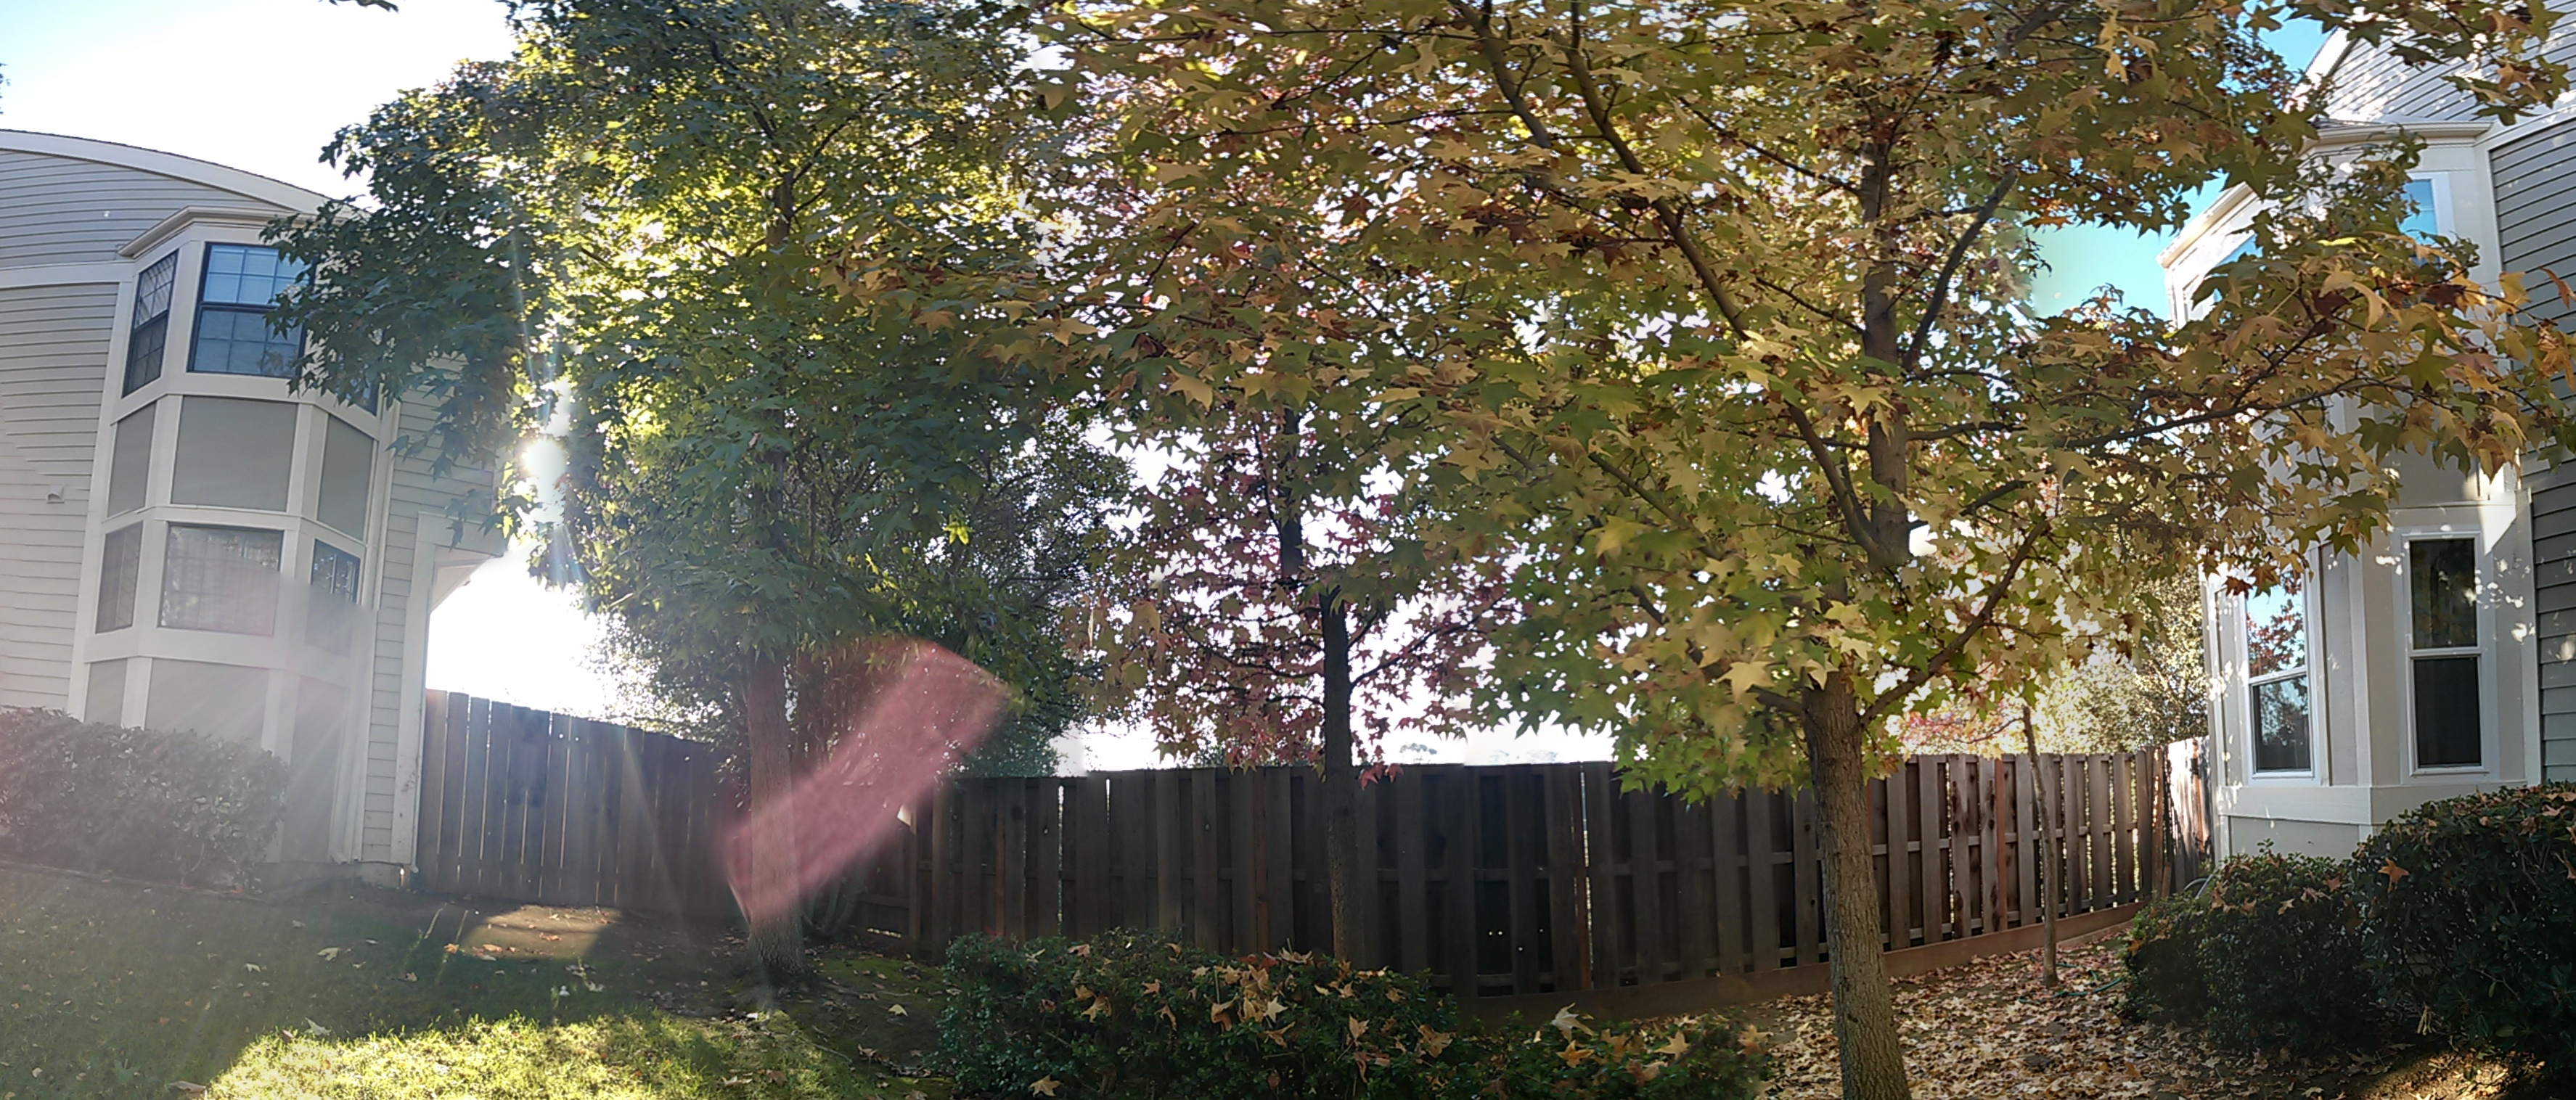 However, Photo Sphere takes very nice looking, scenic panoramic photos outside.